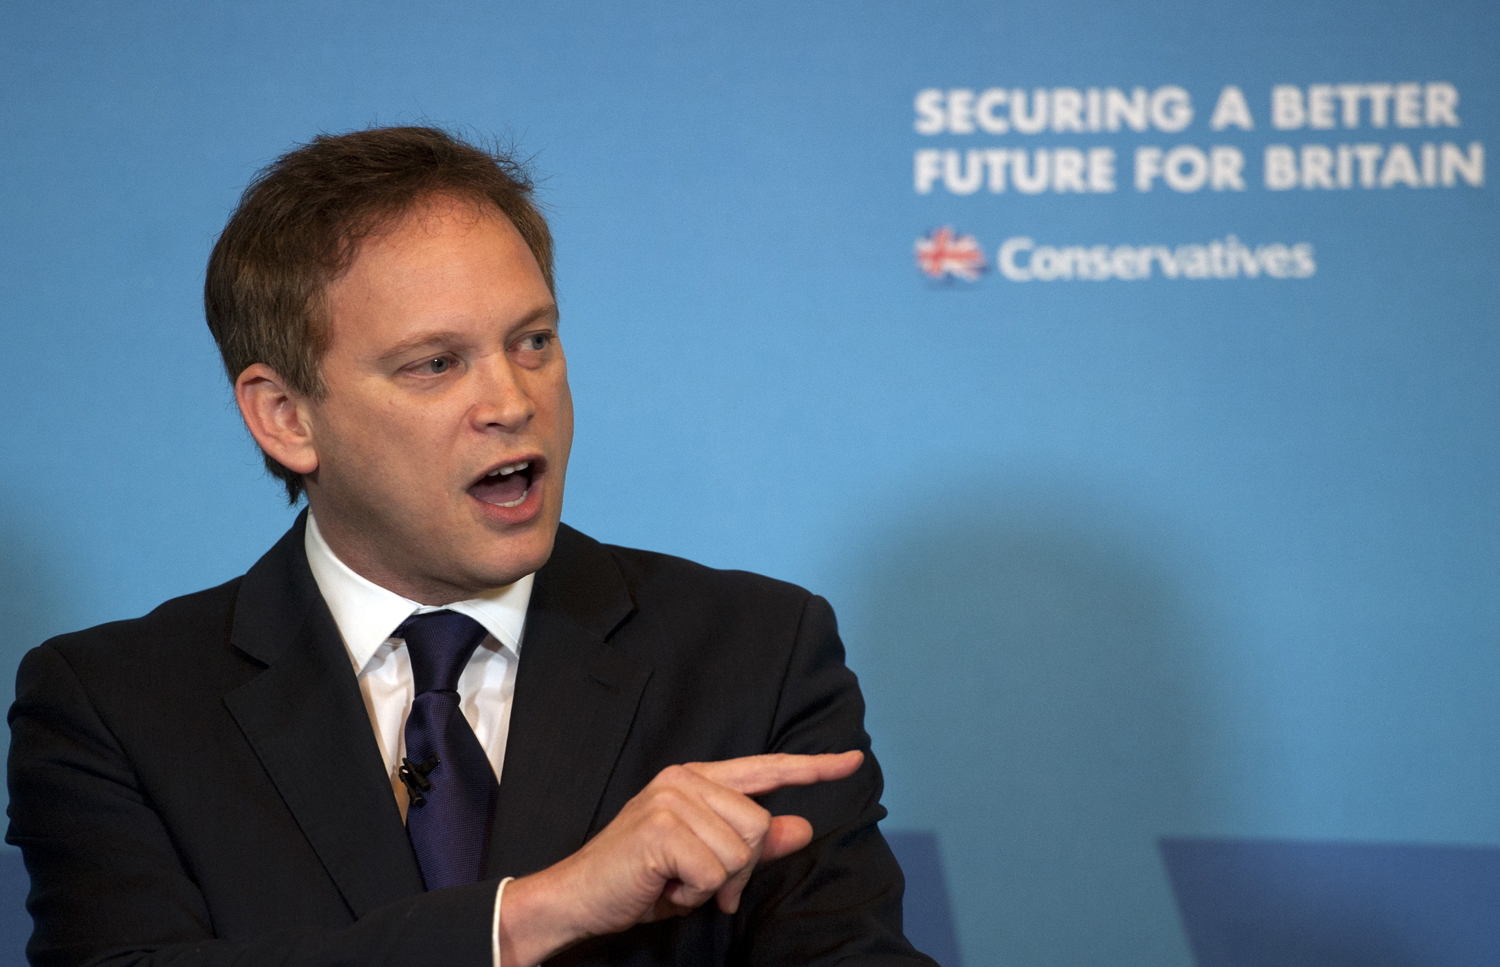 Conservative Party chairman Grant Shapps gives a speech on free trade at the Institute of Directors in London on Feb. 12, 2015